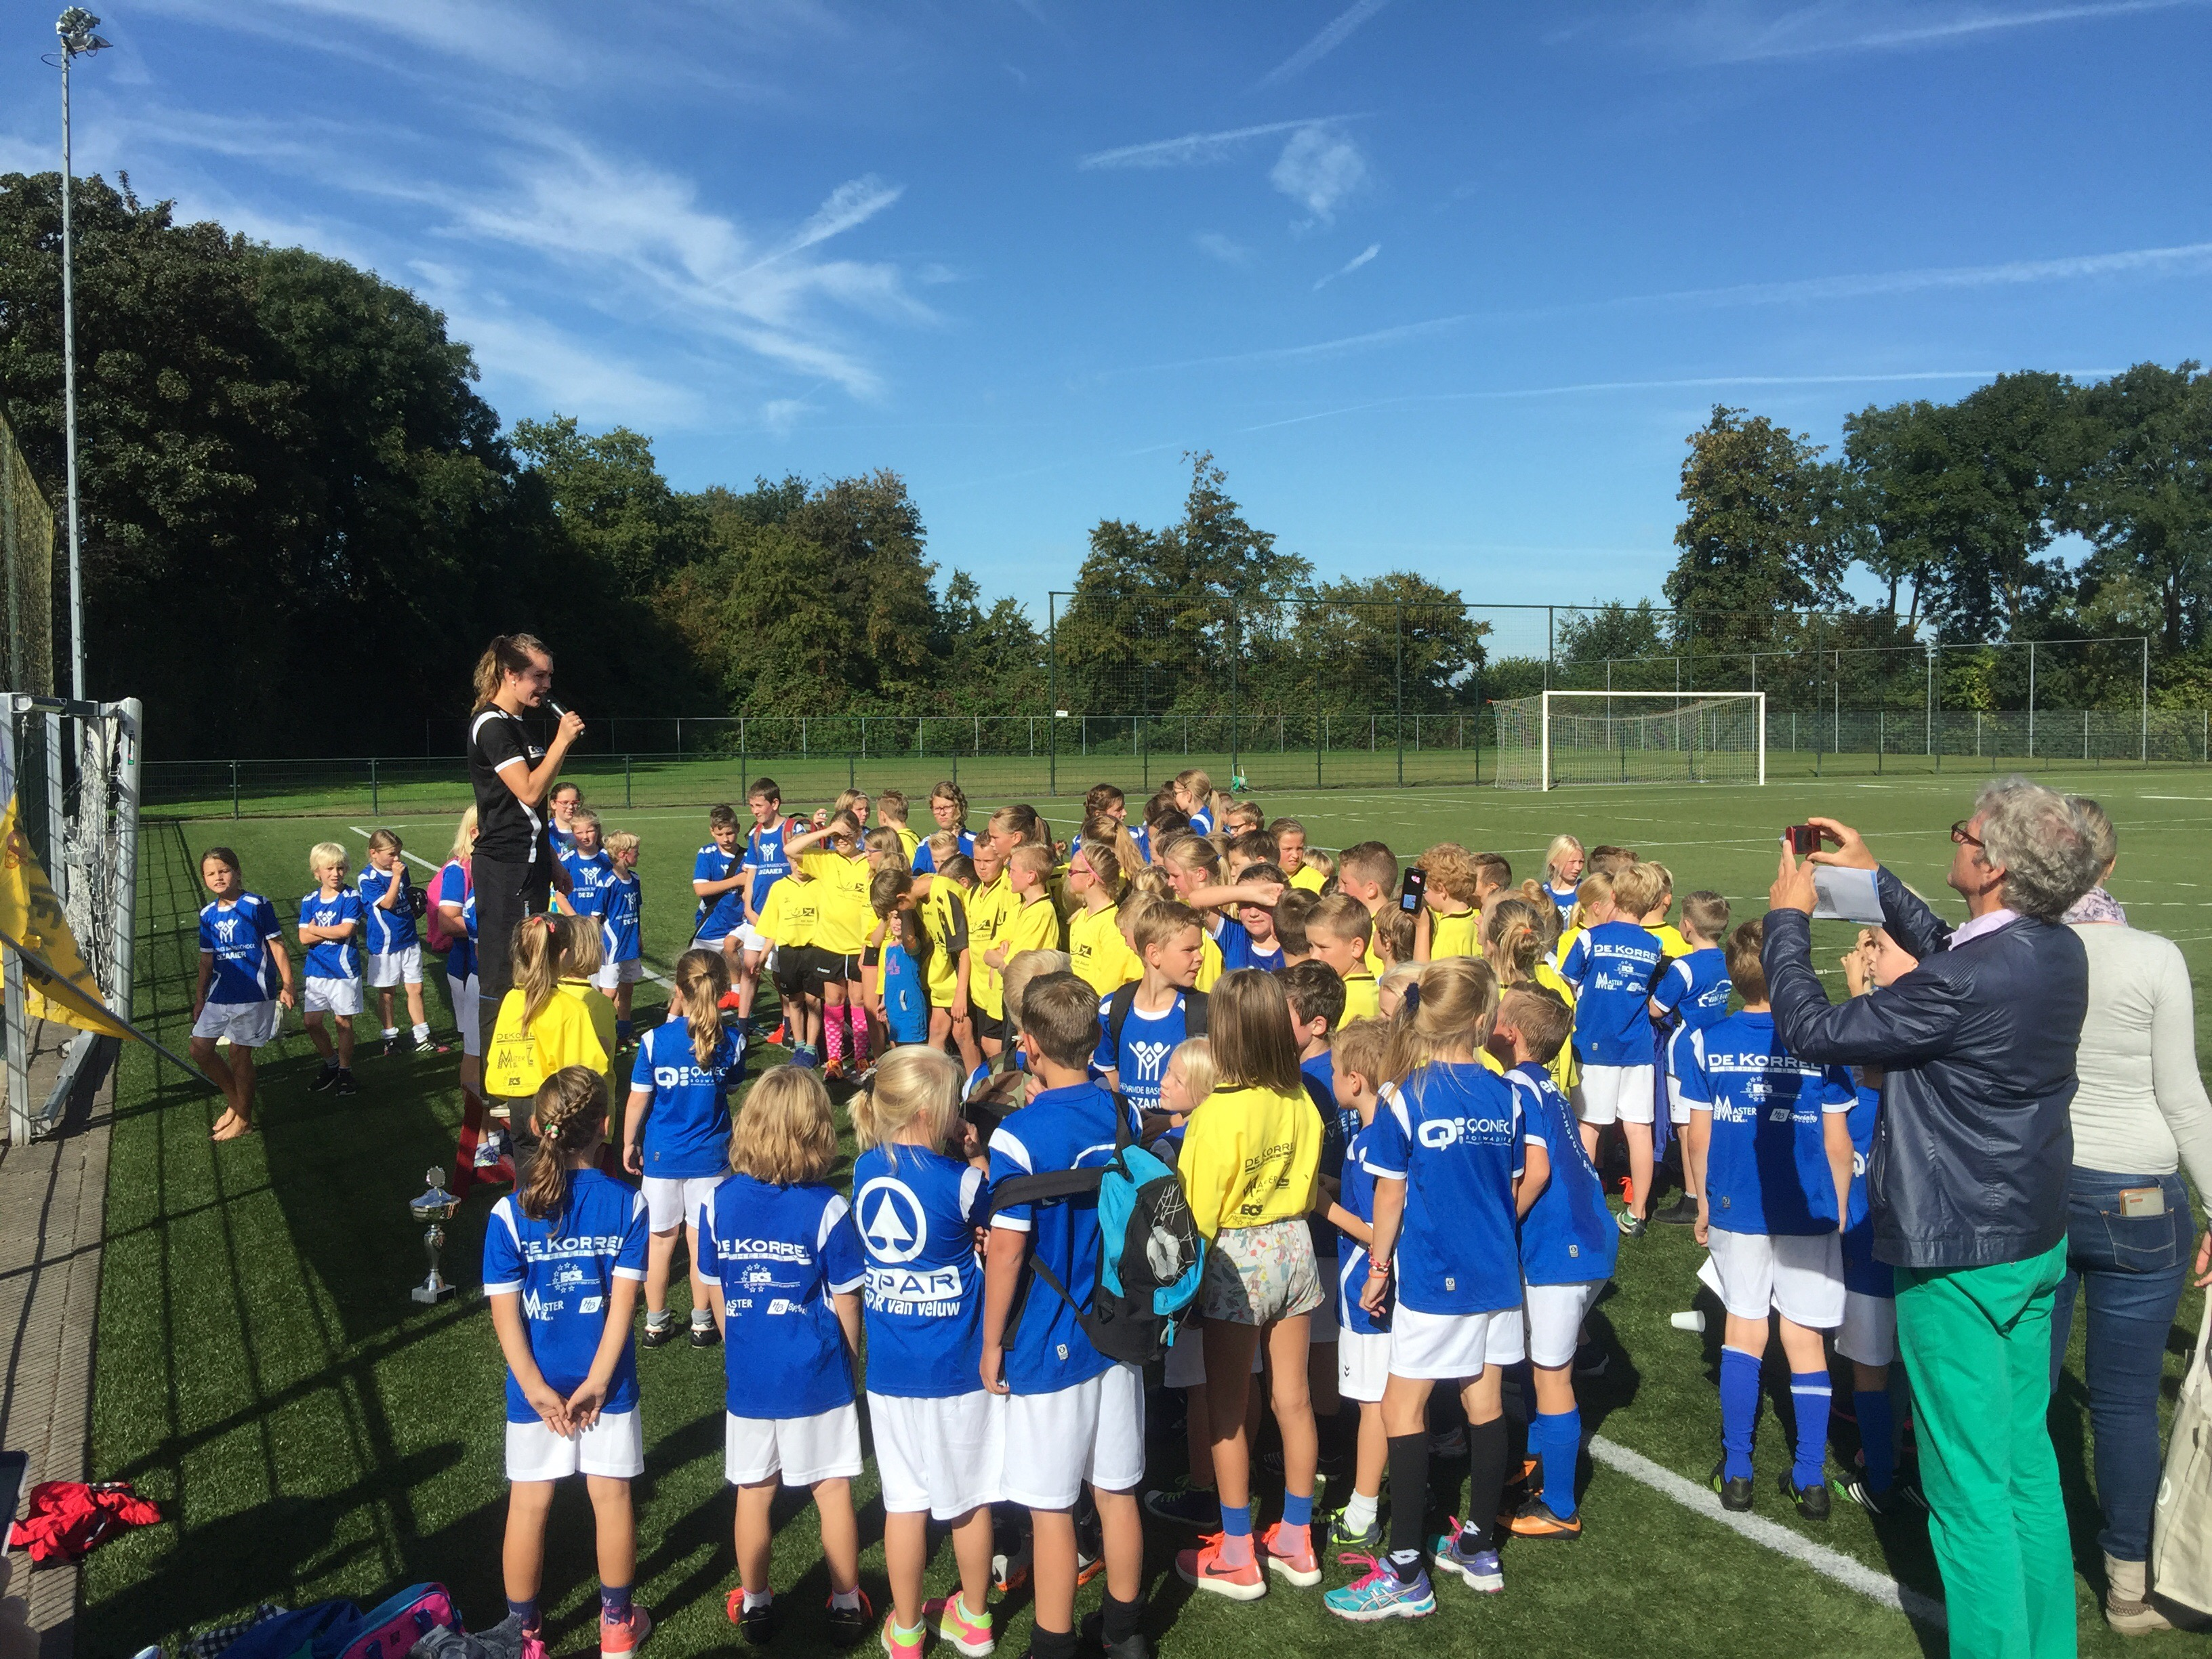 Schoolkorfbal 2017, woensdag 27 september